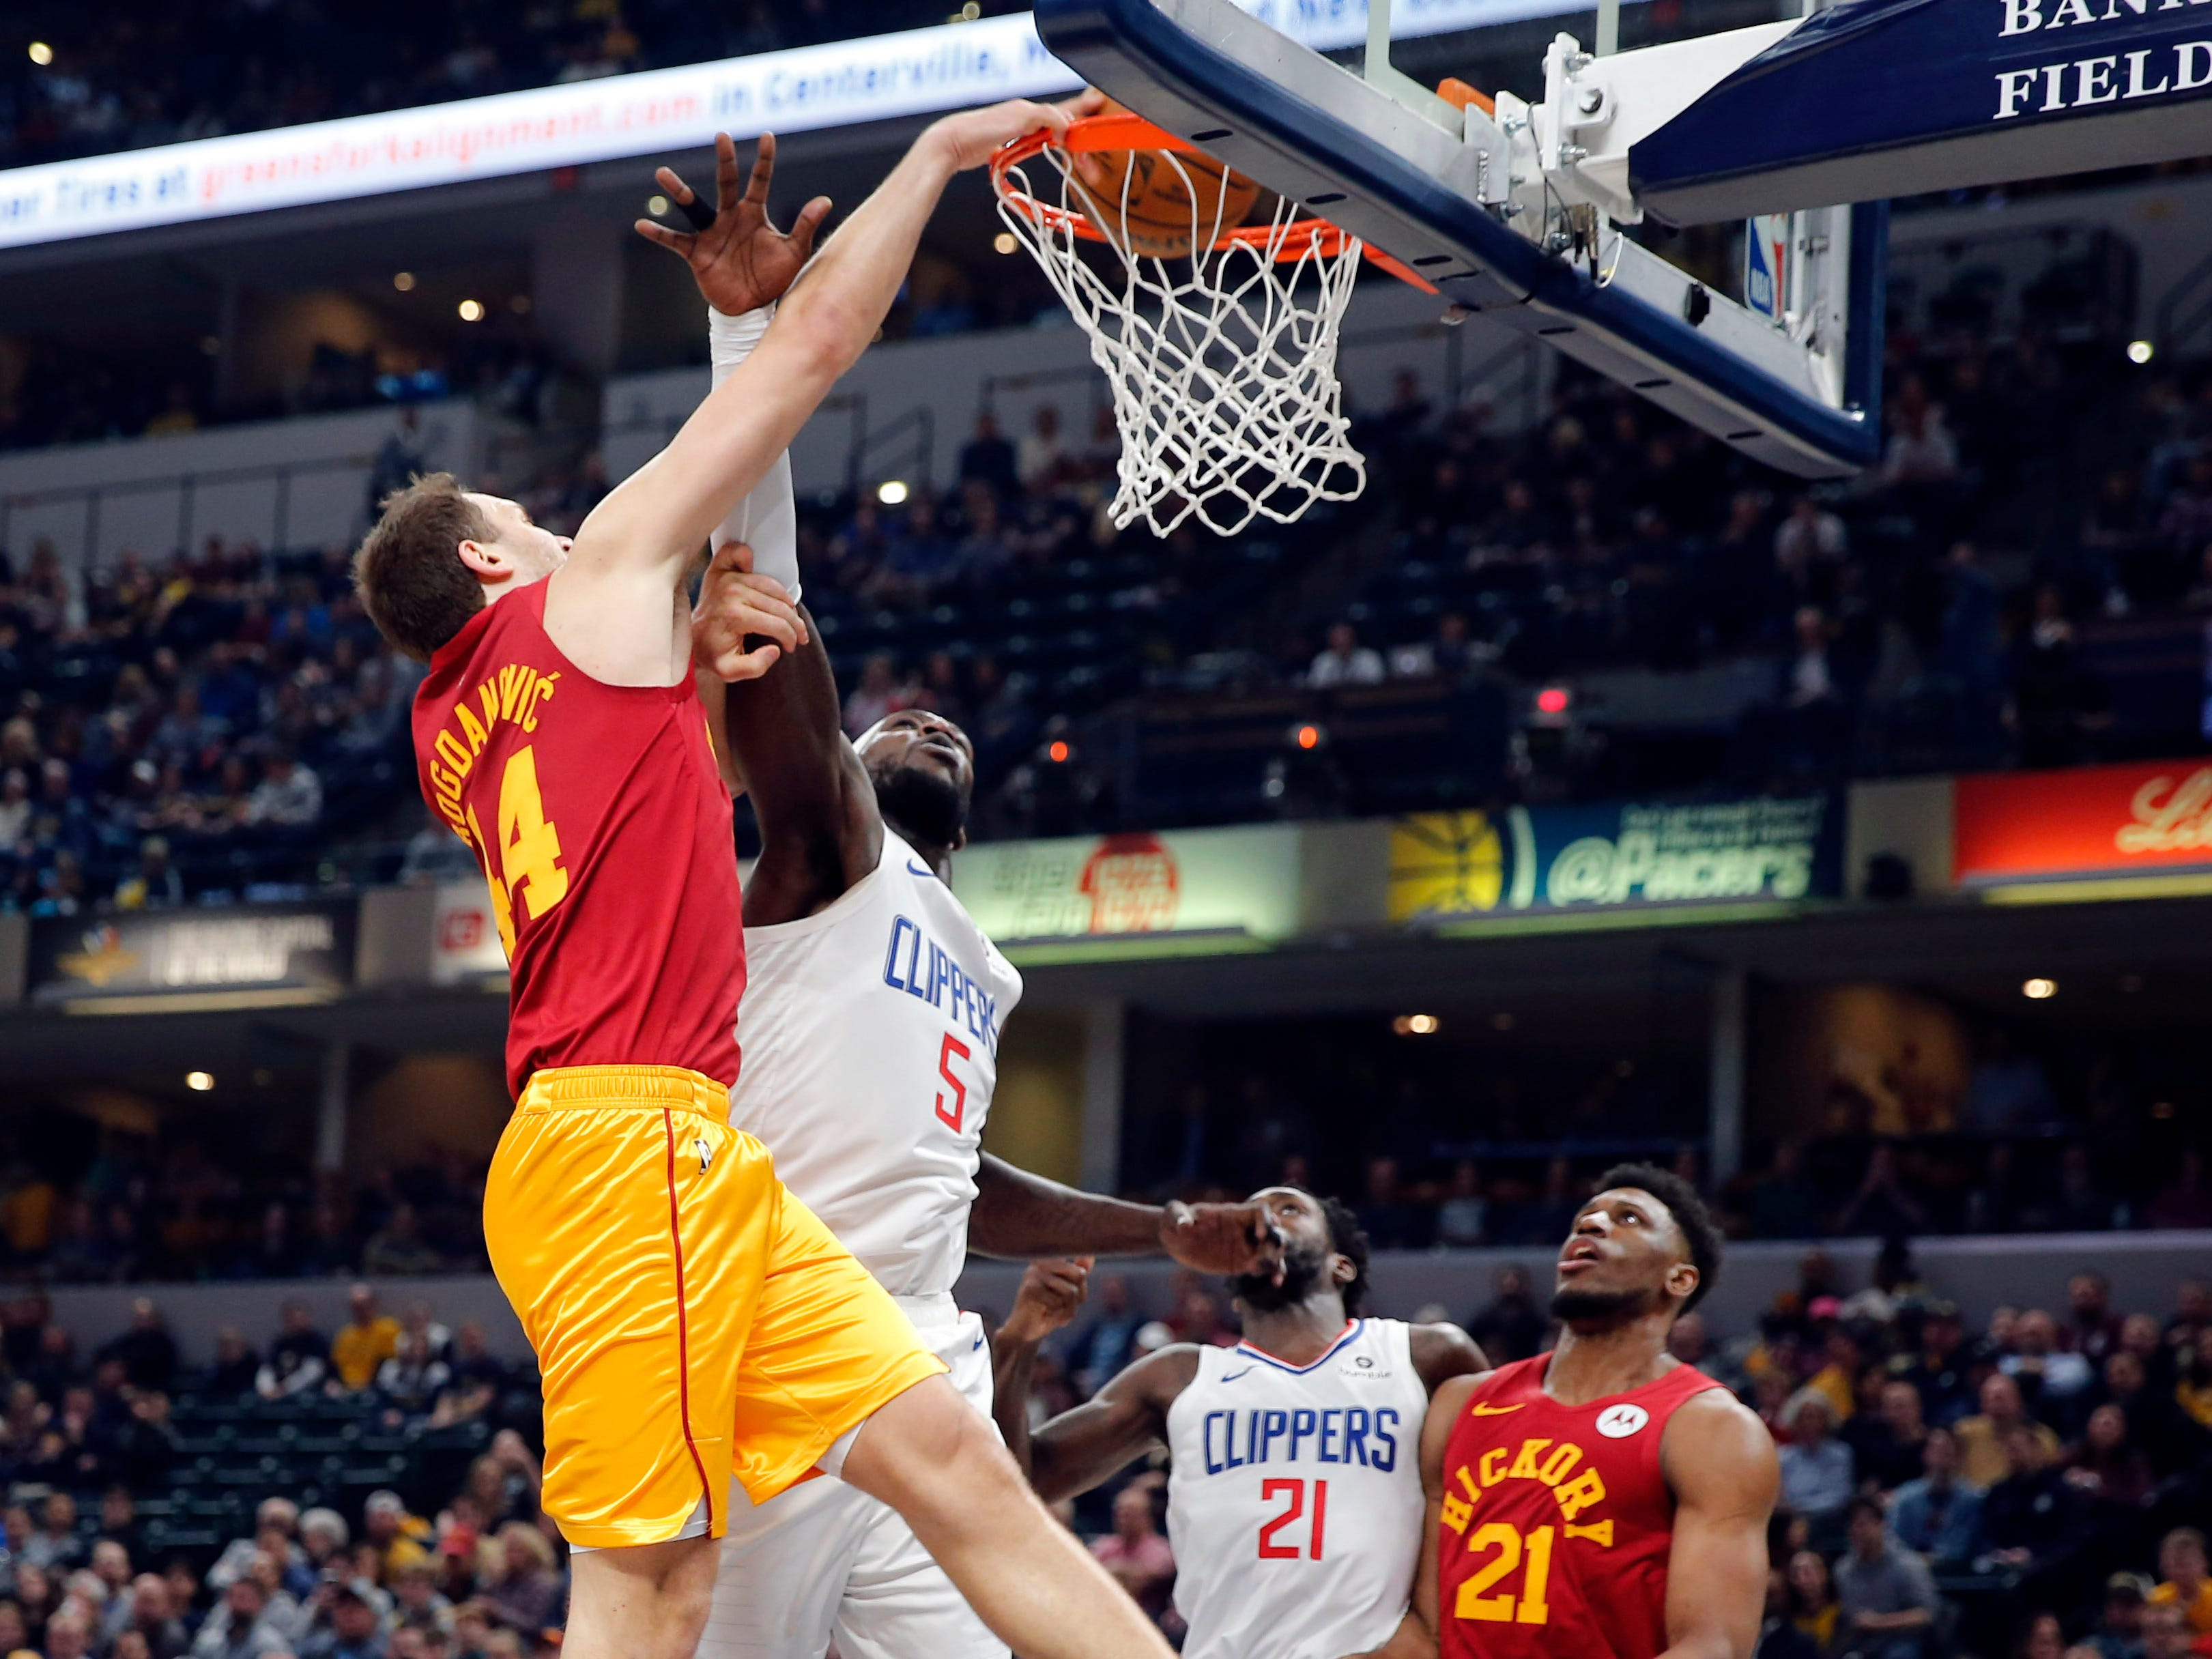 Feb. 7: Indiana Pacers forward Bojan Bogdanovic dunks against the Los Angeles Clippers.